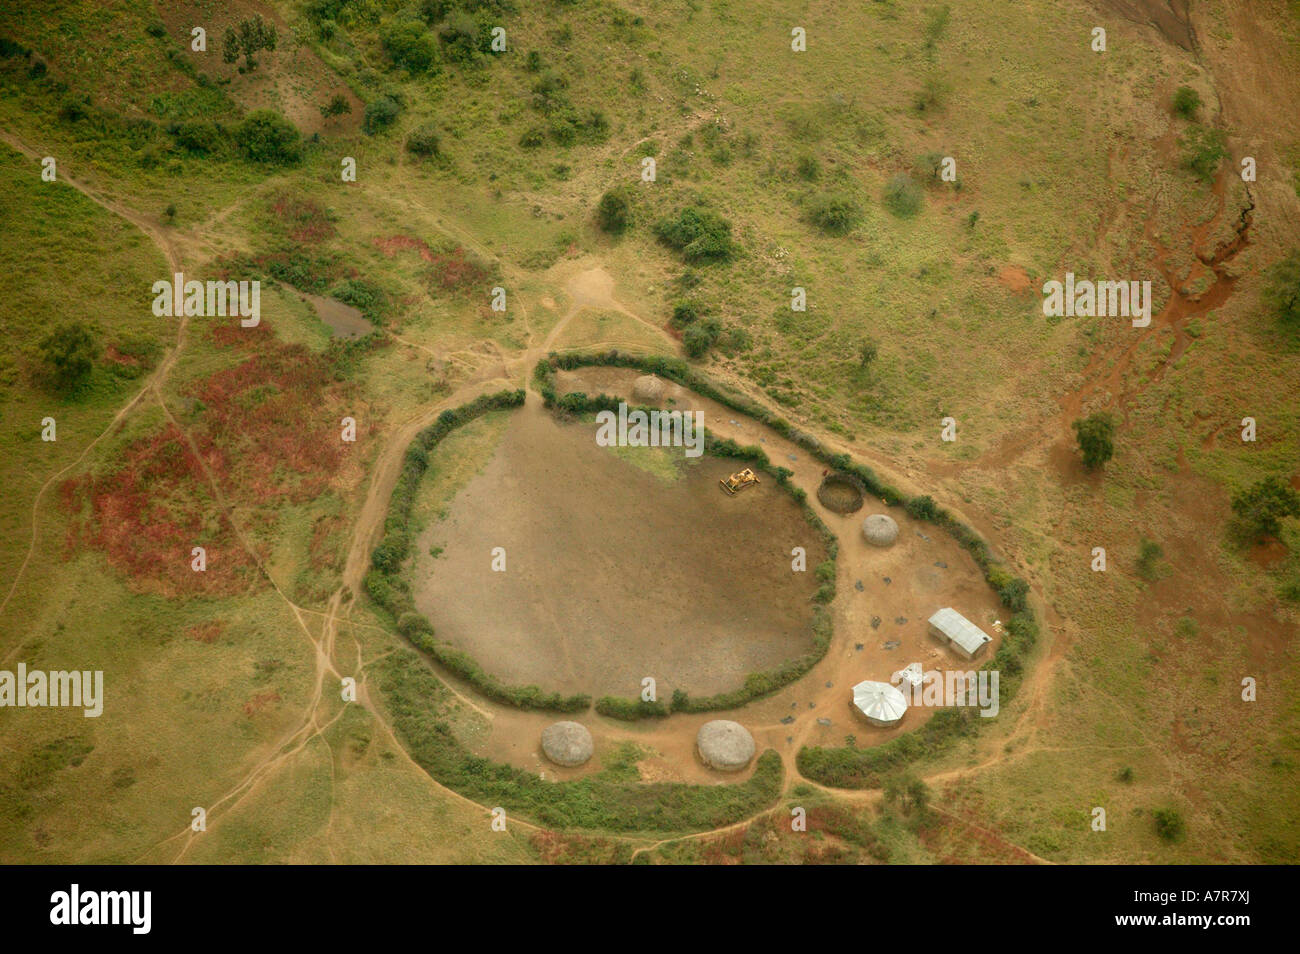 An aerial view of a rural Masaai homestead built around a cattle and goat kraal and showing a network of paths - Stock Image